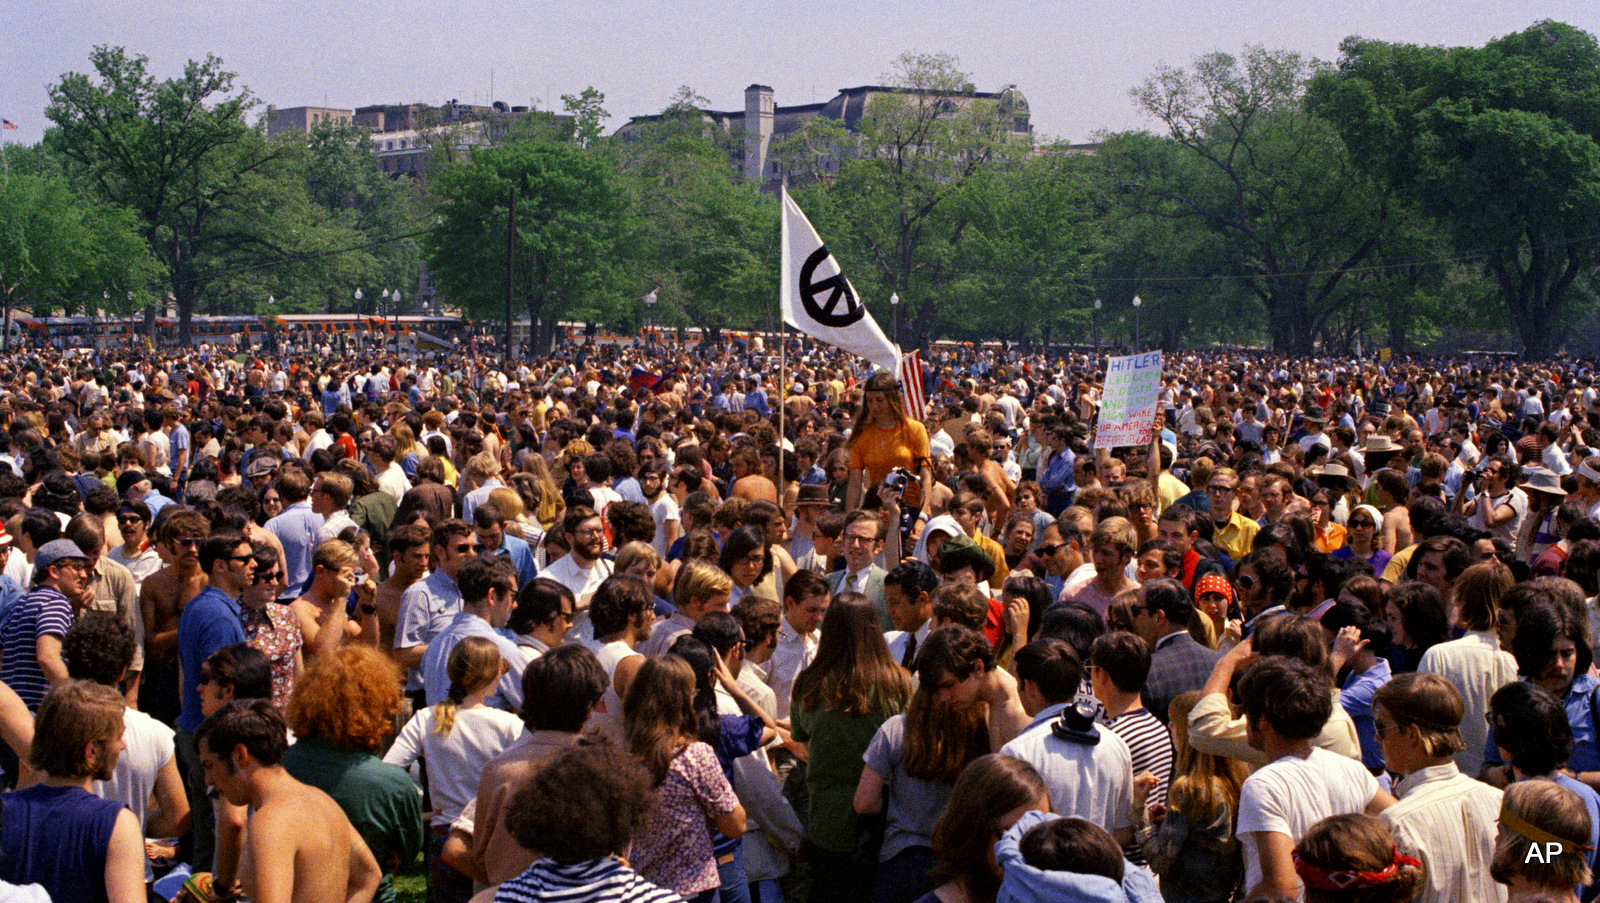 Anti-war demonstrators Mass on the Ellipse in Washington on May 9, 1970.